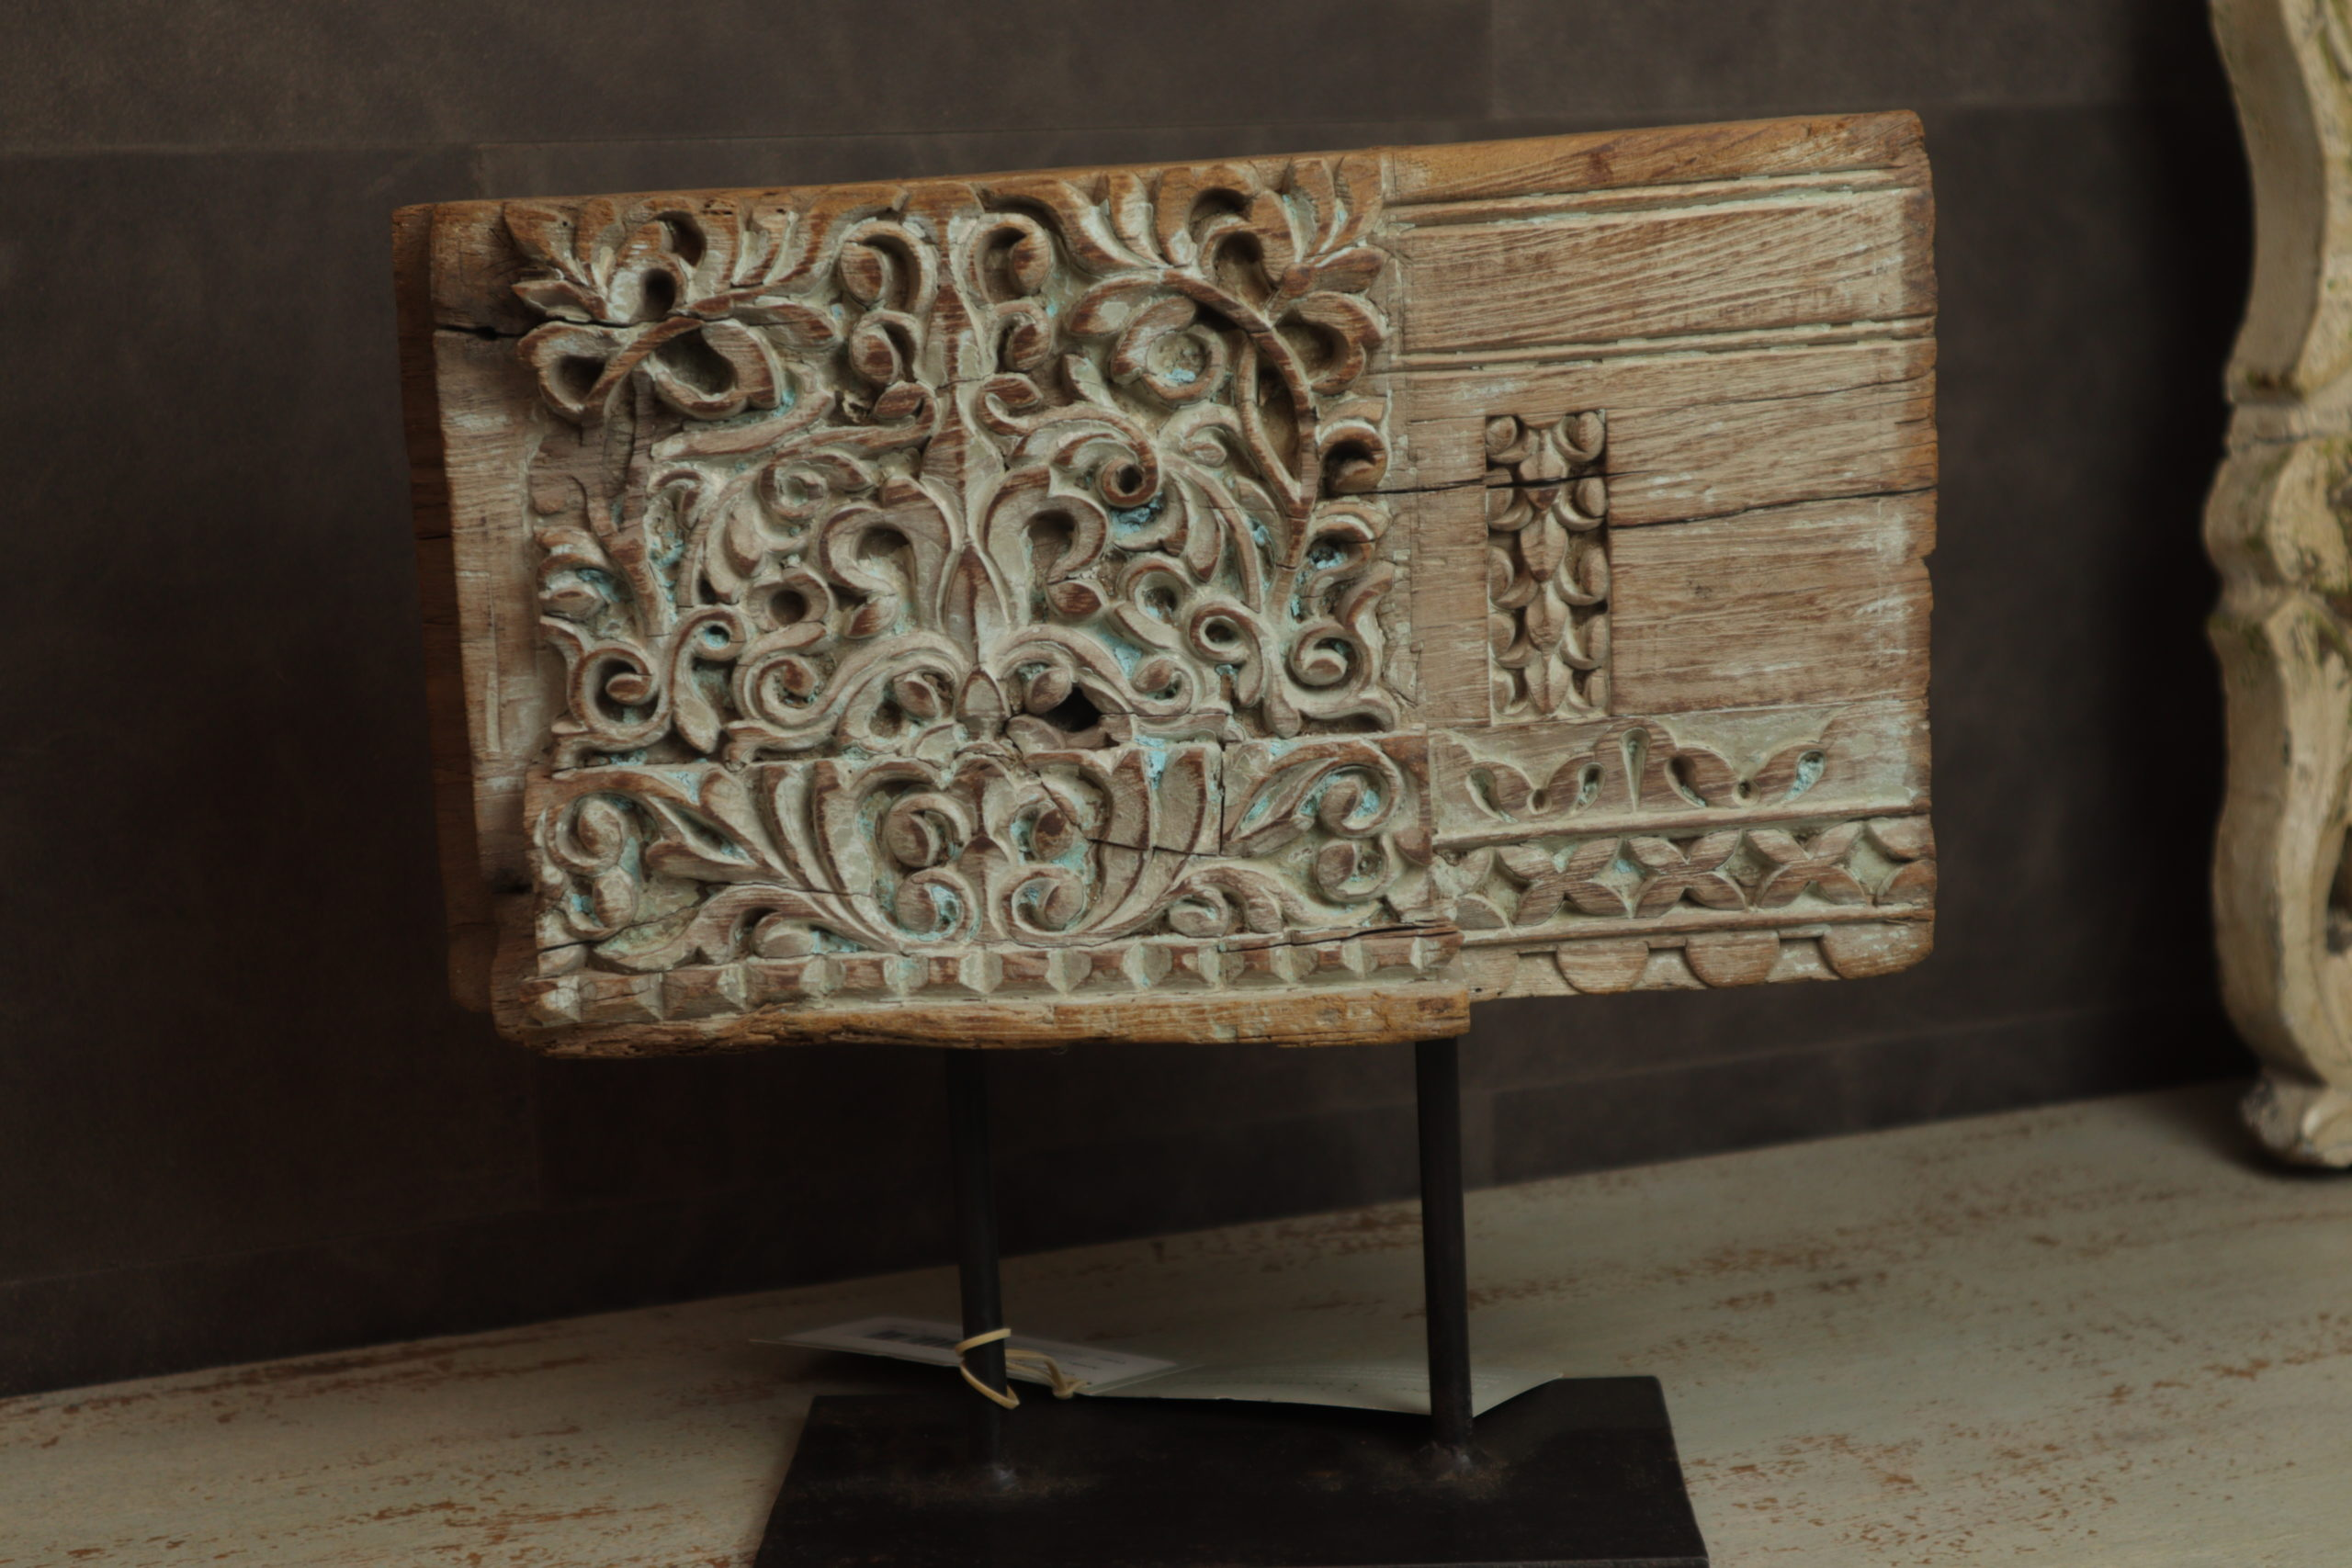 Carved panel on metal stand Inpa woonwinkel bergen op zoom